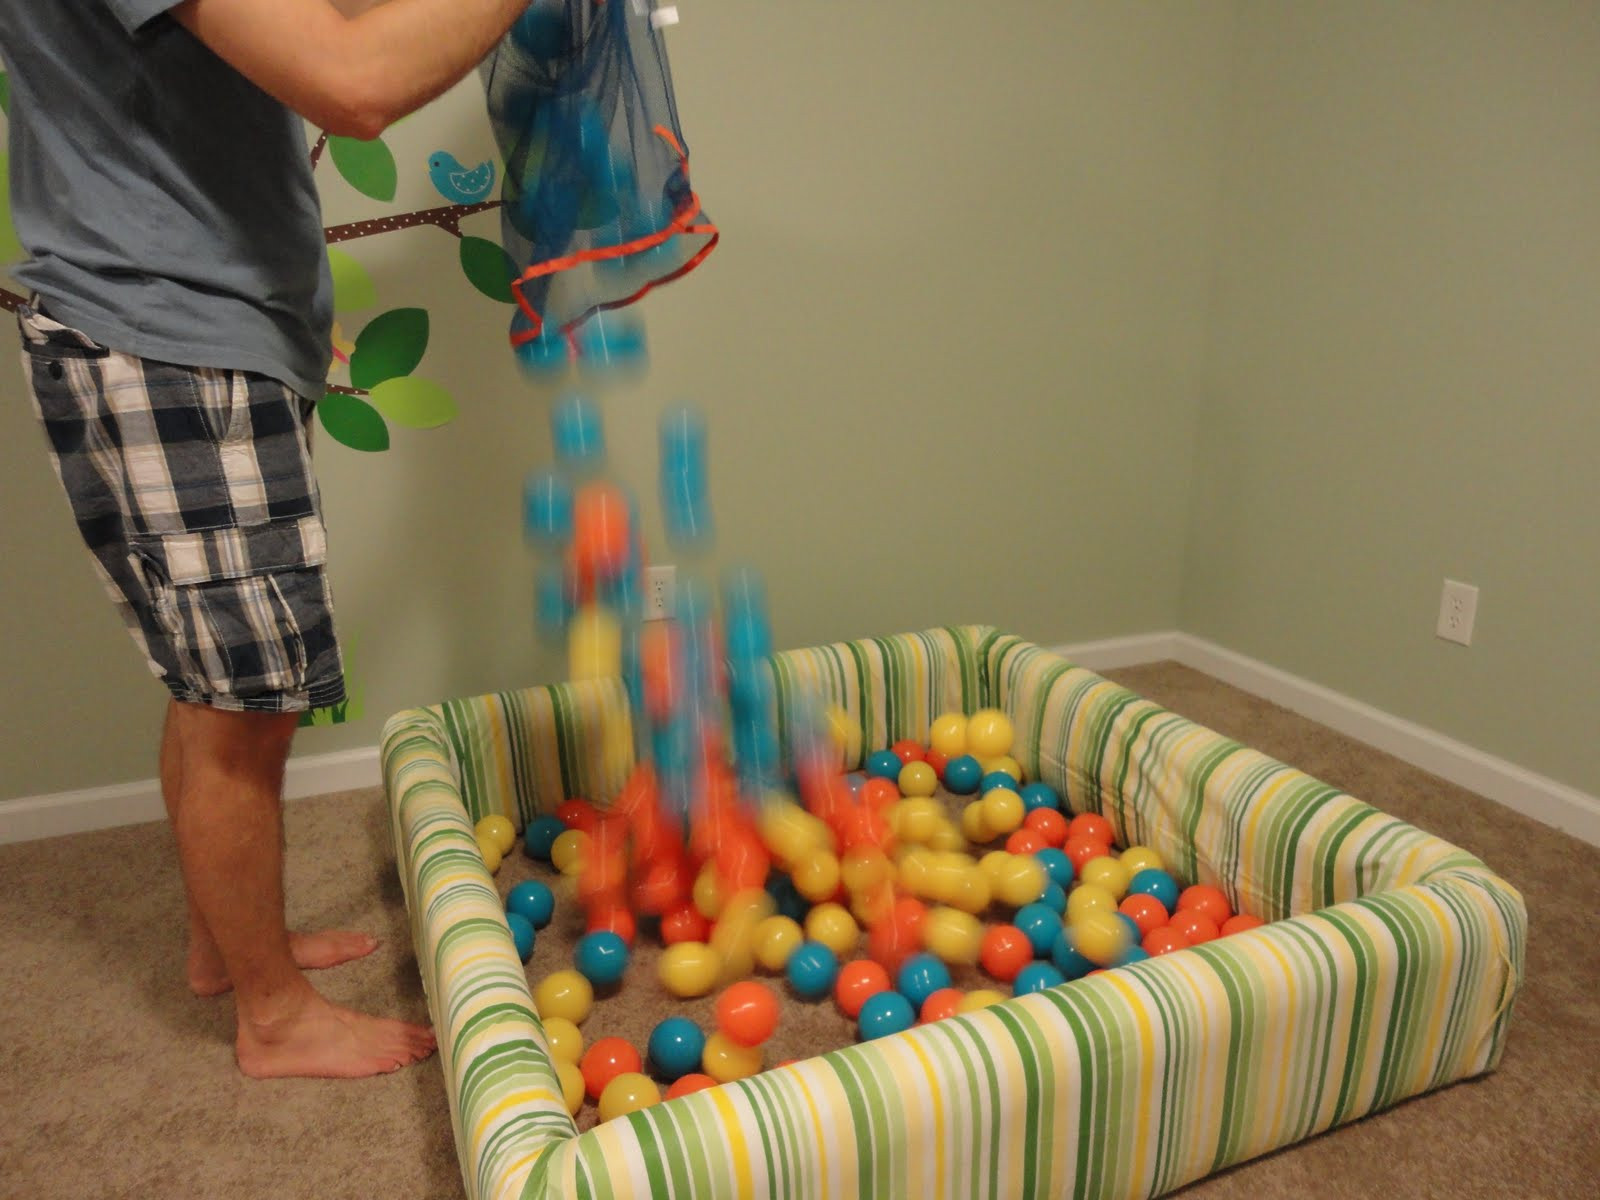 Best ideas about DIY Ball Pit For Toddlers . Save or Pin our life how to build a ball pit Now.